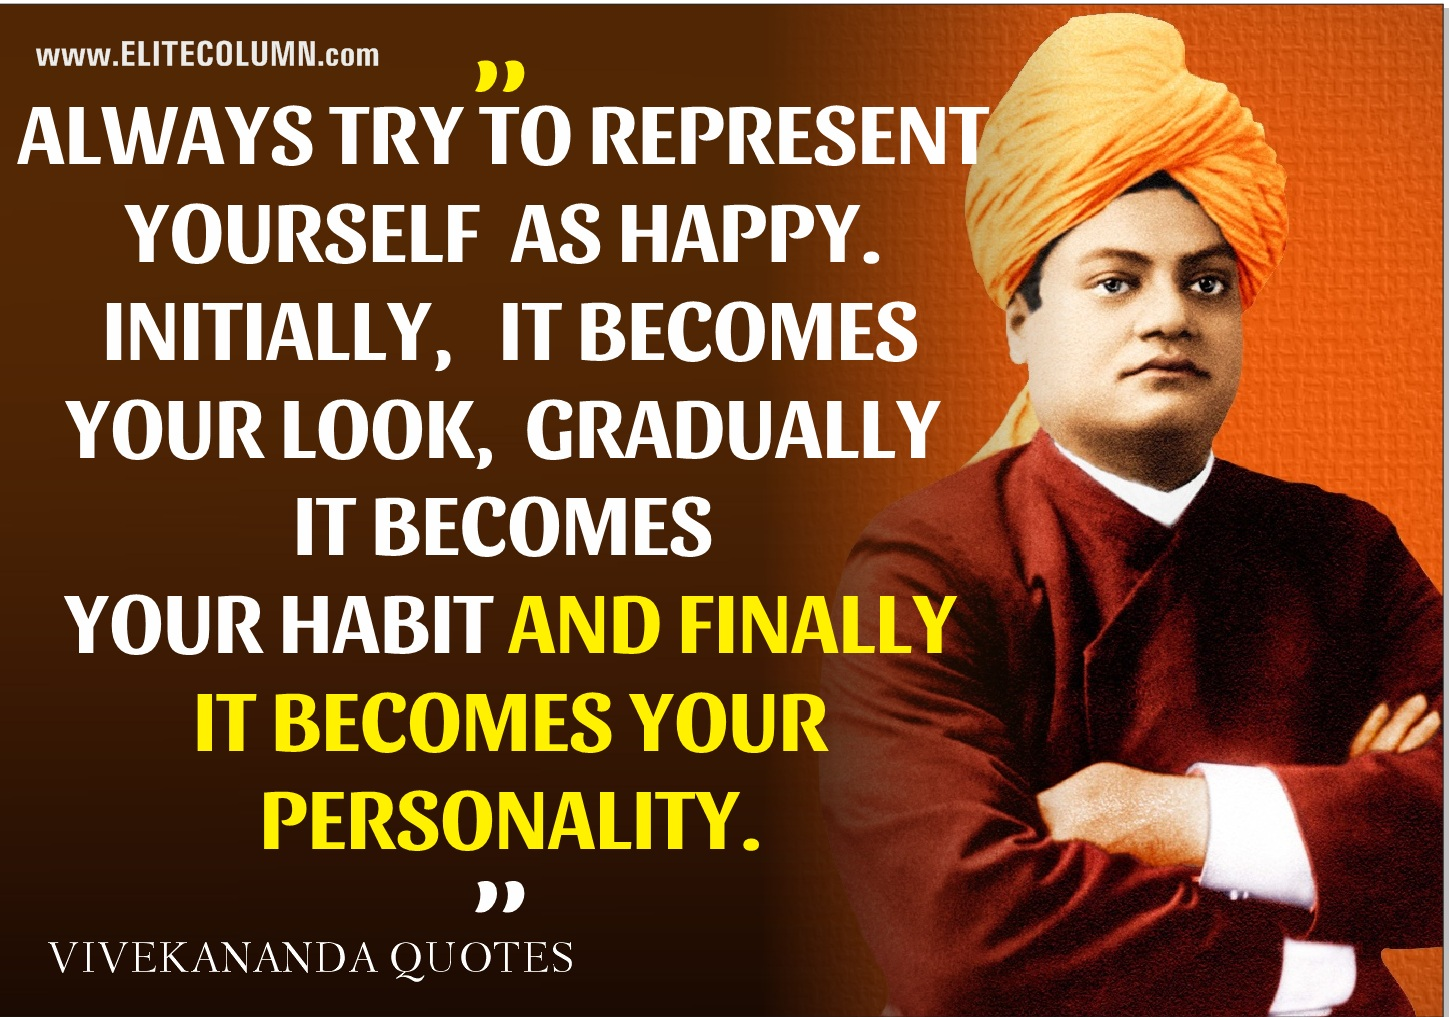 Quotes Vivekananda 10 Swami Vivekananda Quotes Which Are Still Relevant  Elitecolumn